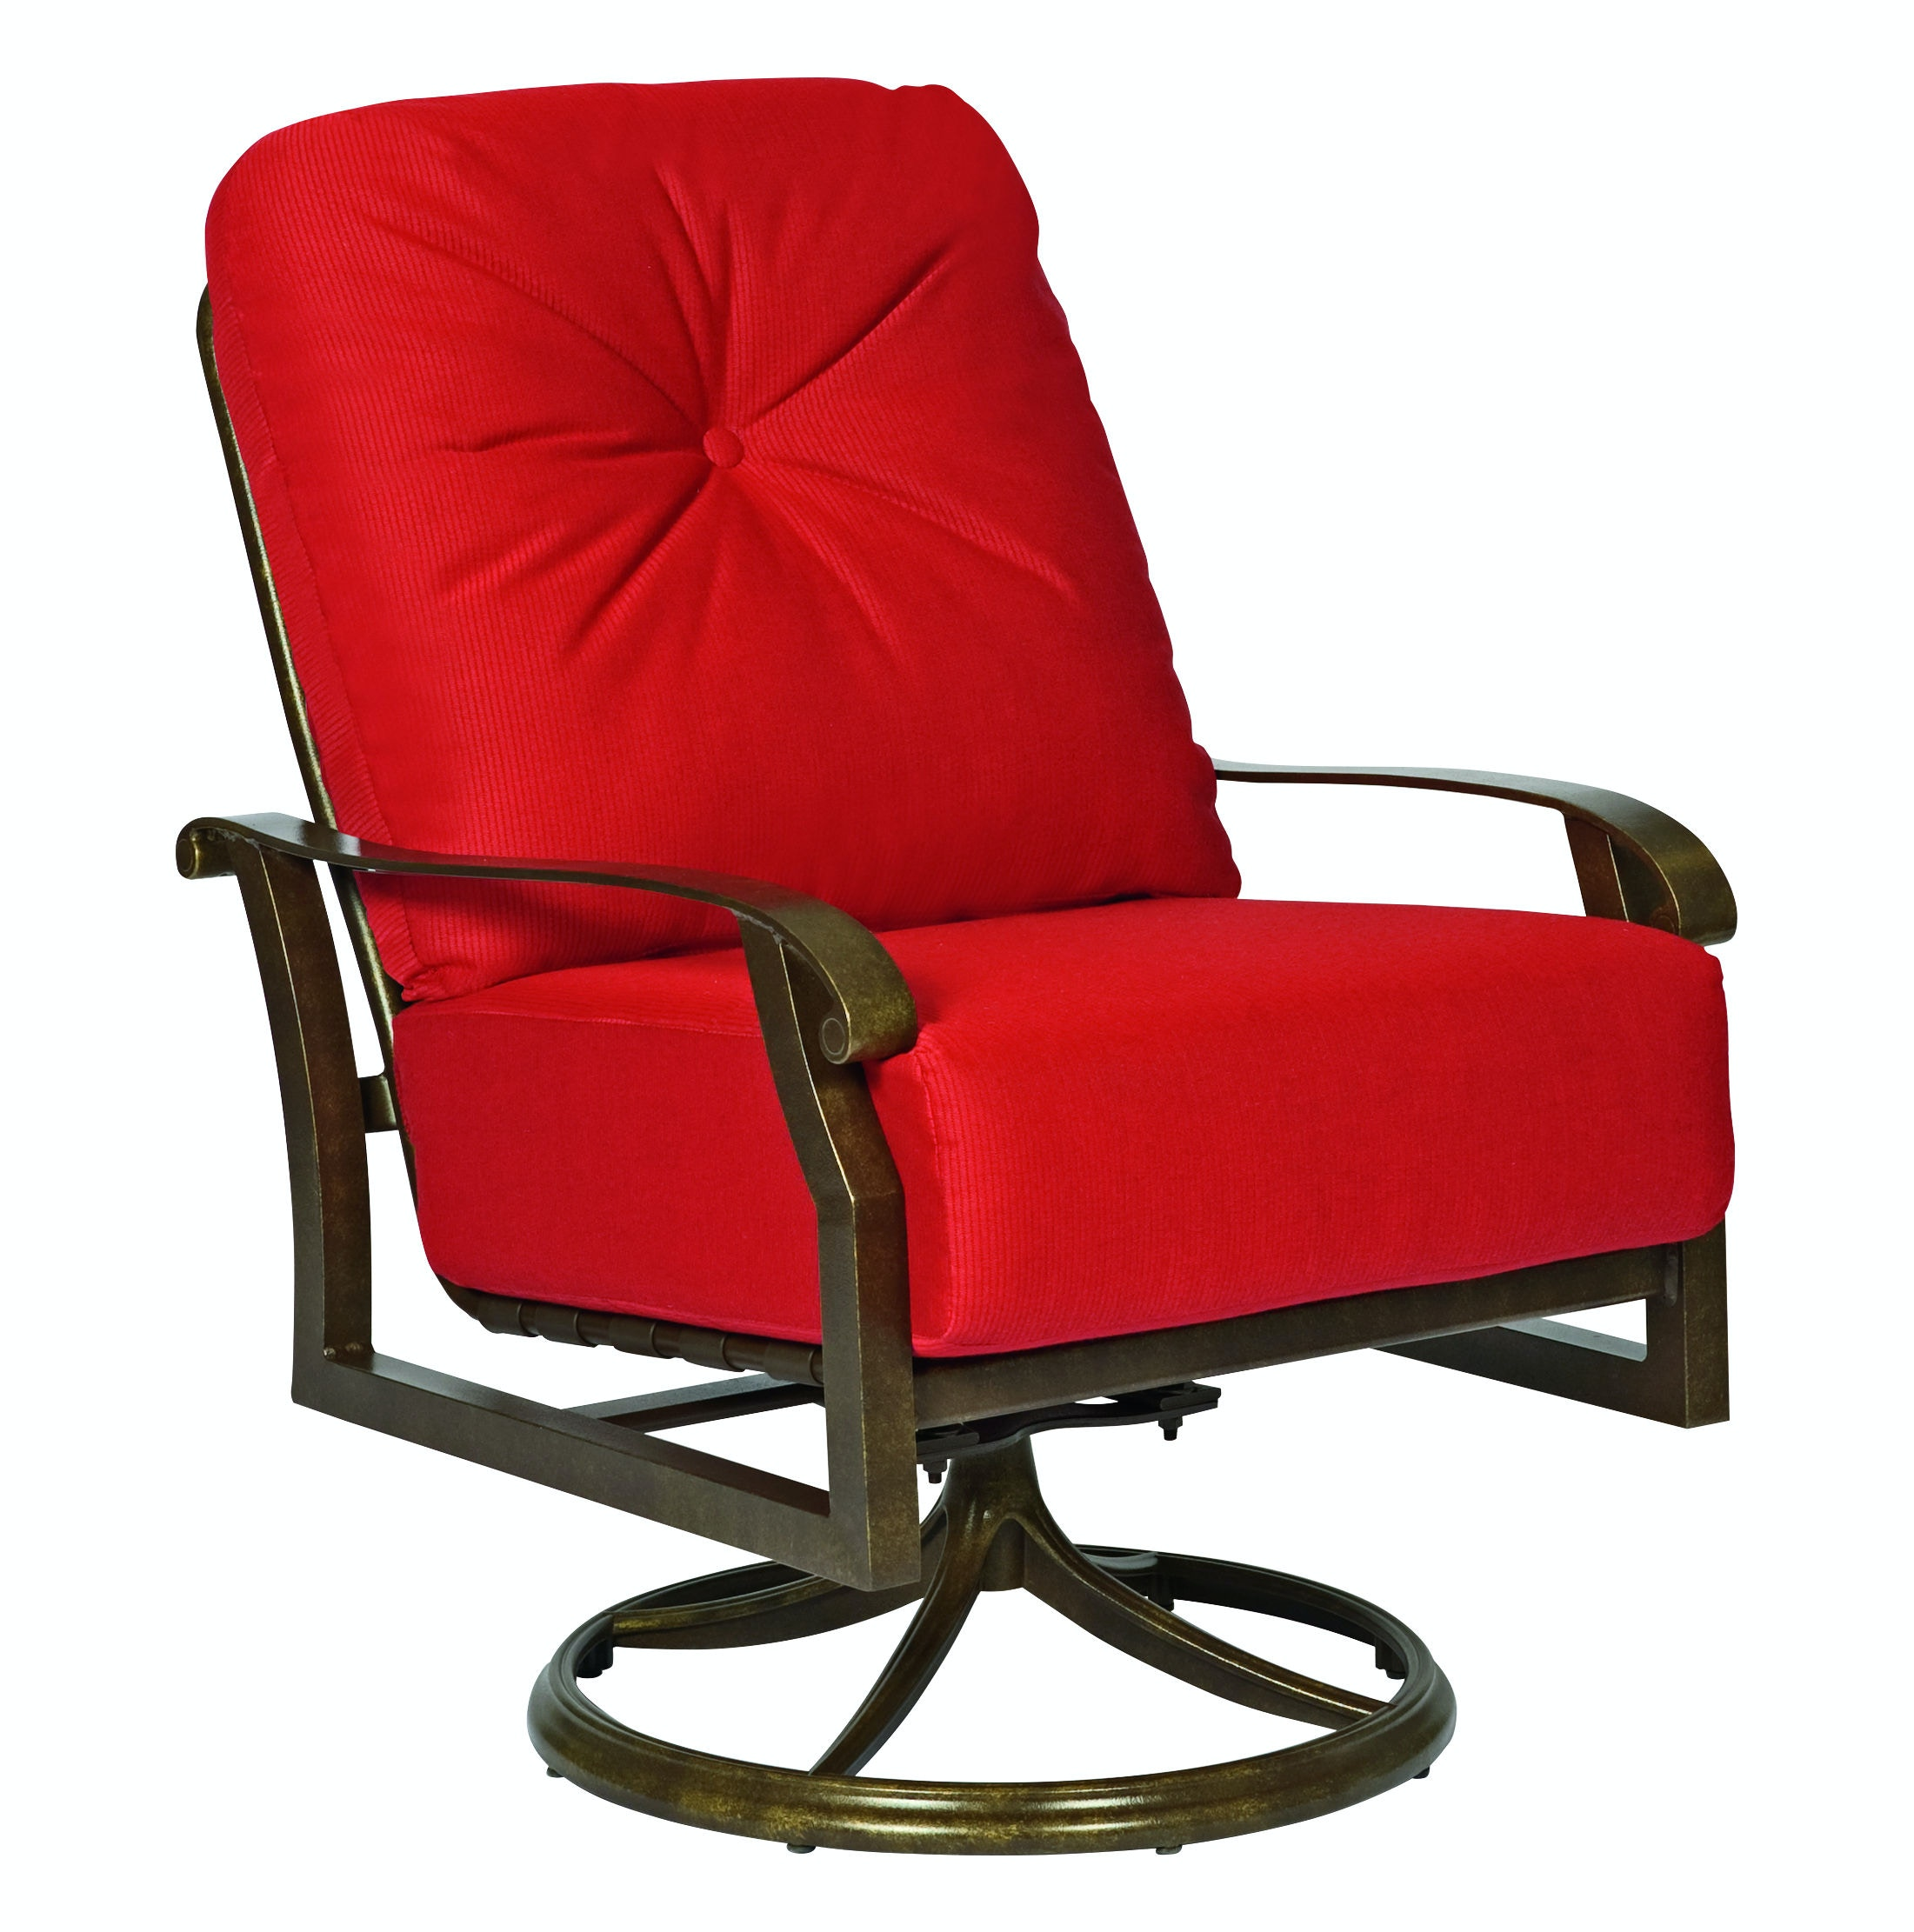 Cortland XL Swivel Rocker. Cortland XL Swivel Rocker · Fire House Casual